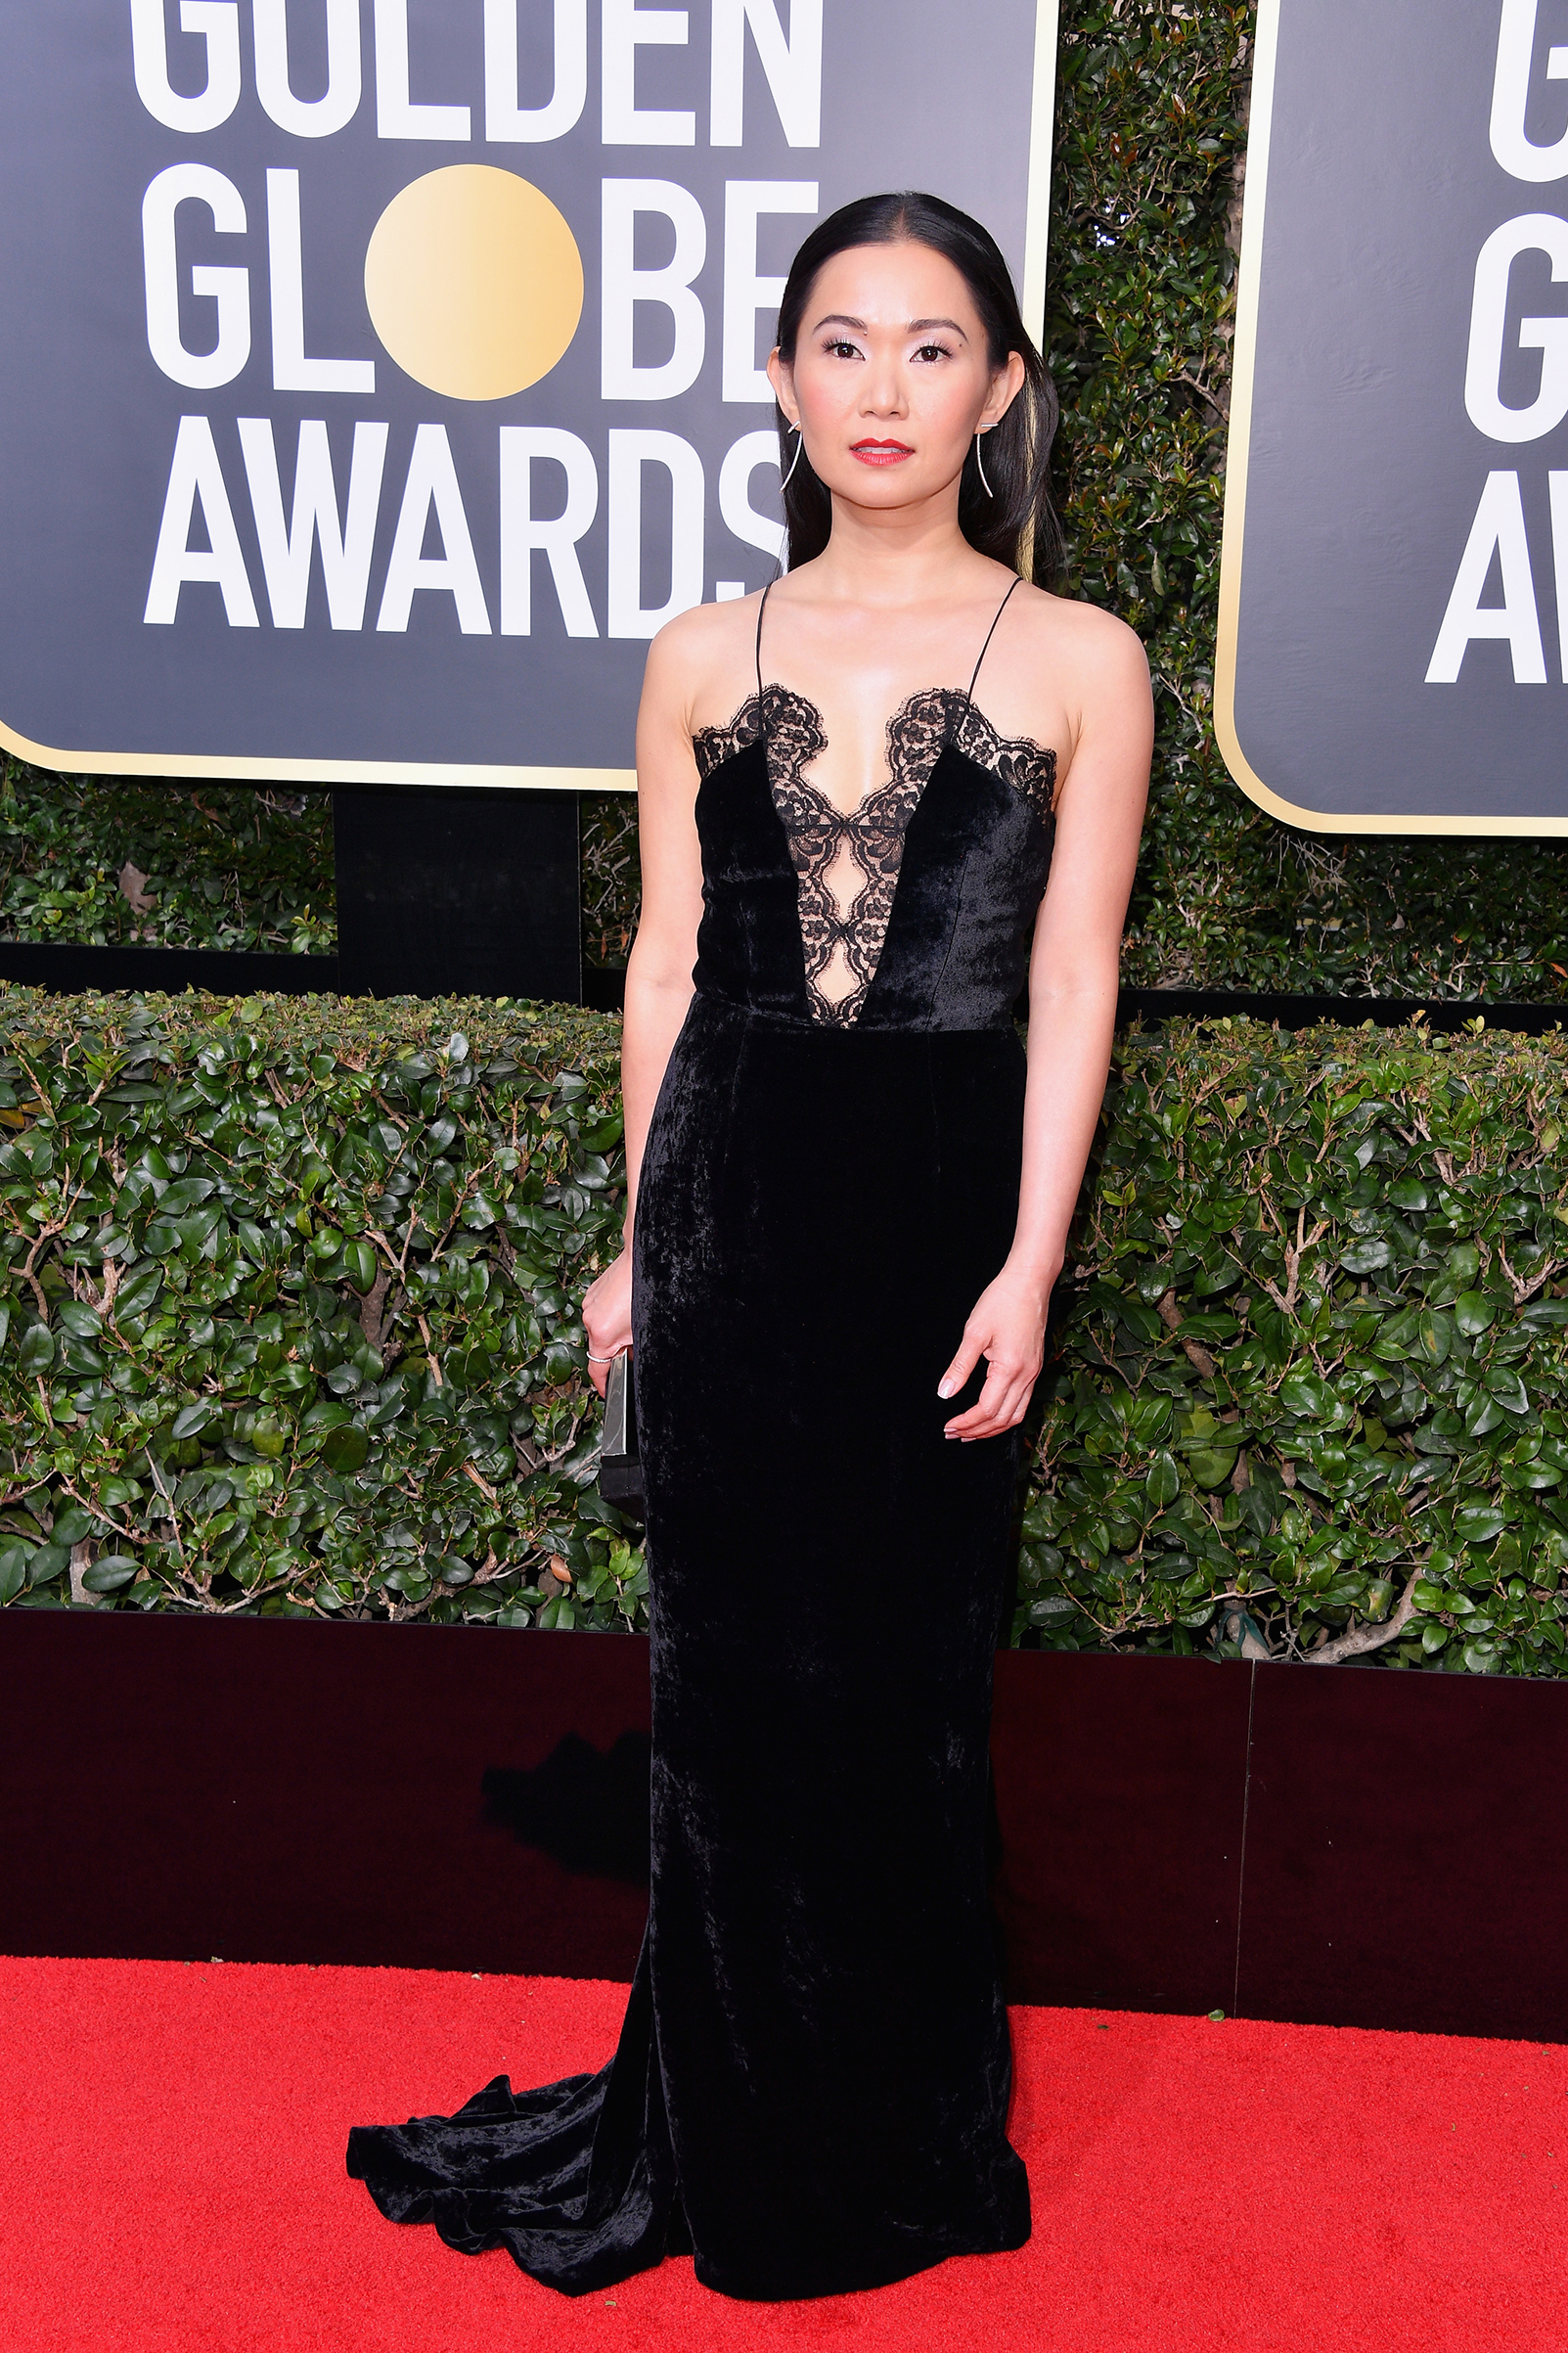 Actor Hong Chau  attends The 75th Annual Golden Globe Awards at The Beverly Hilton Hotel on January 7, 2018 in Beverly Hills, California.